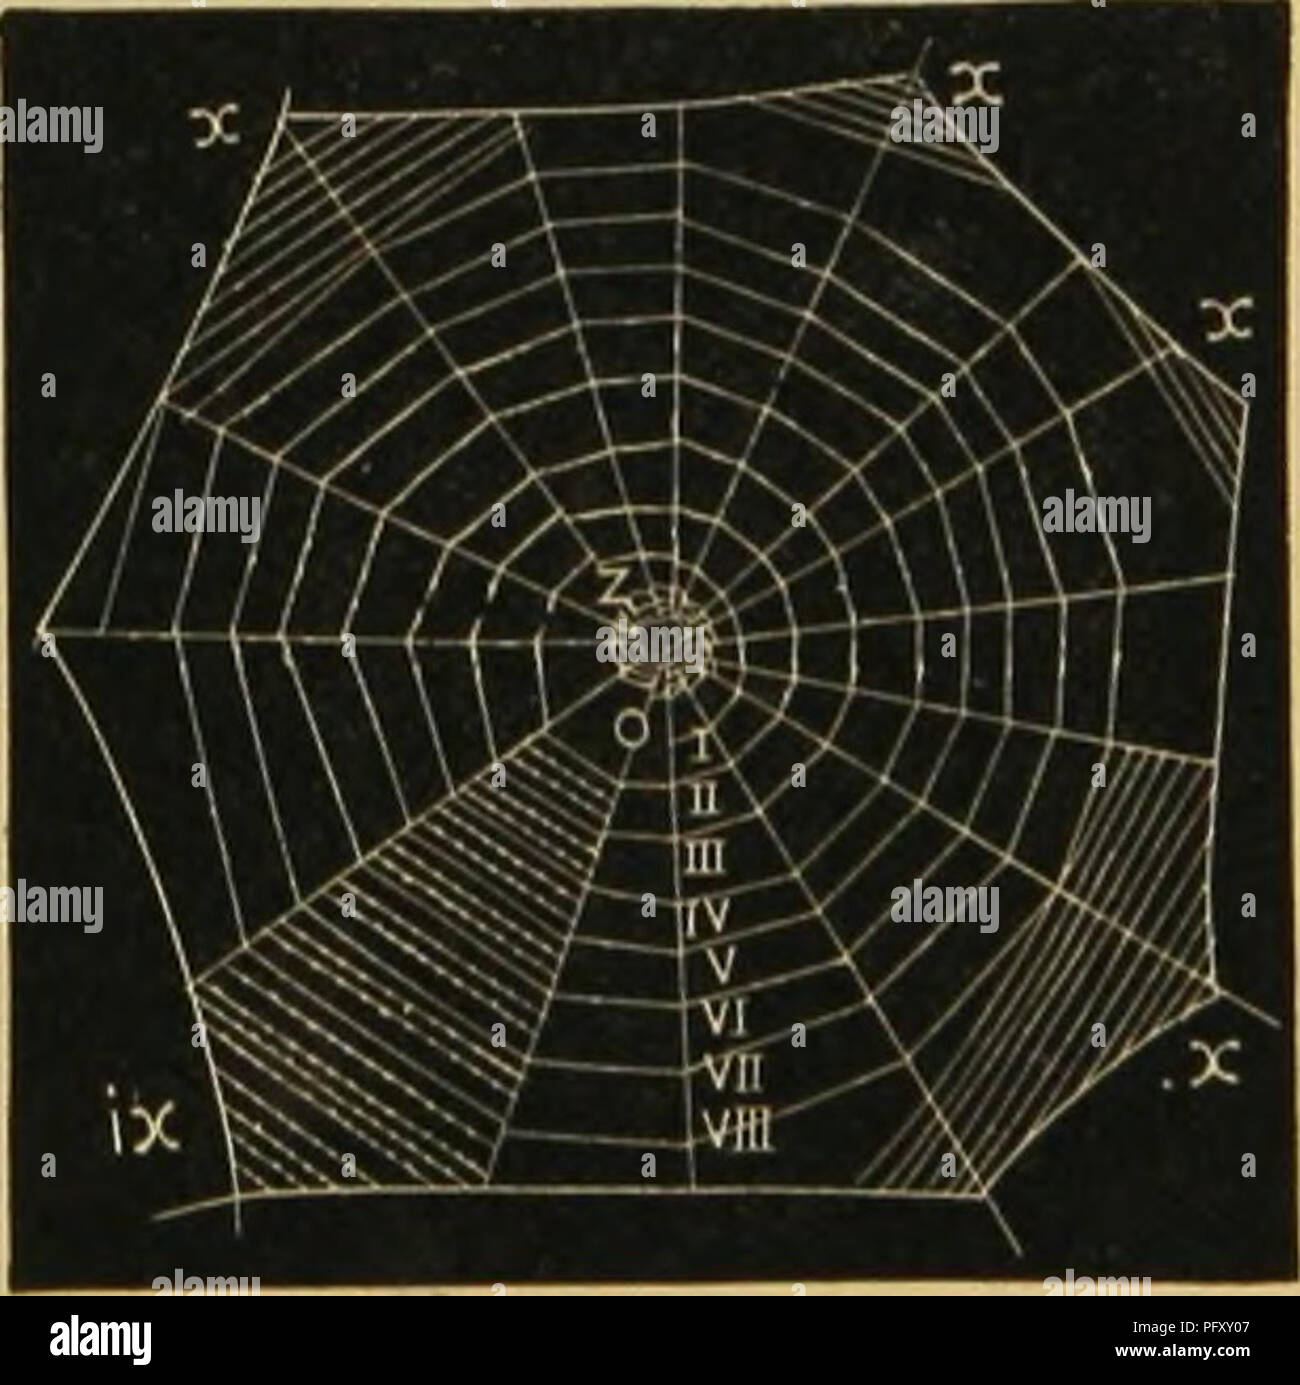 ". American spiders and their spinning work. A natural history of the orbweaving spiders of the United States, with special regard to their industry and habits. Spiders. CHAPTER Y. THE ARMATURE OF ORBWEBS: VISCID SPIRALS. The next step in orbmaking is to prepare for the spinning of the con- centric lines or spirals. This is done by starting a line at or near the notched zone and carrying it around spirally toward the circuin- """"^^^ ^^i"" ference, attaching it by the spinnerets to the intersected radii, folding"" '^^^^ forms the spiral scaifolding. The distance between these li - Stock Image"